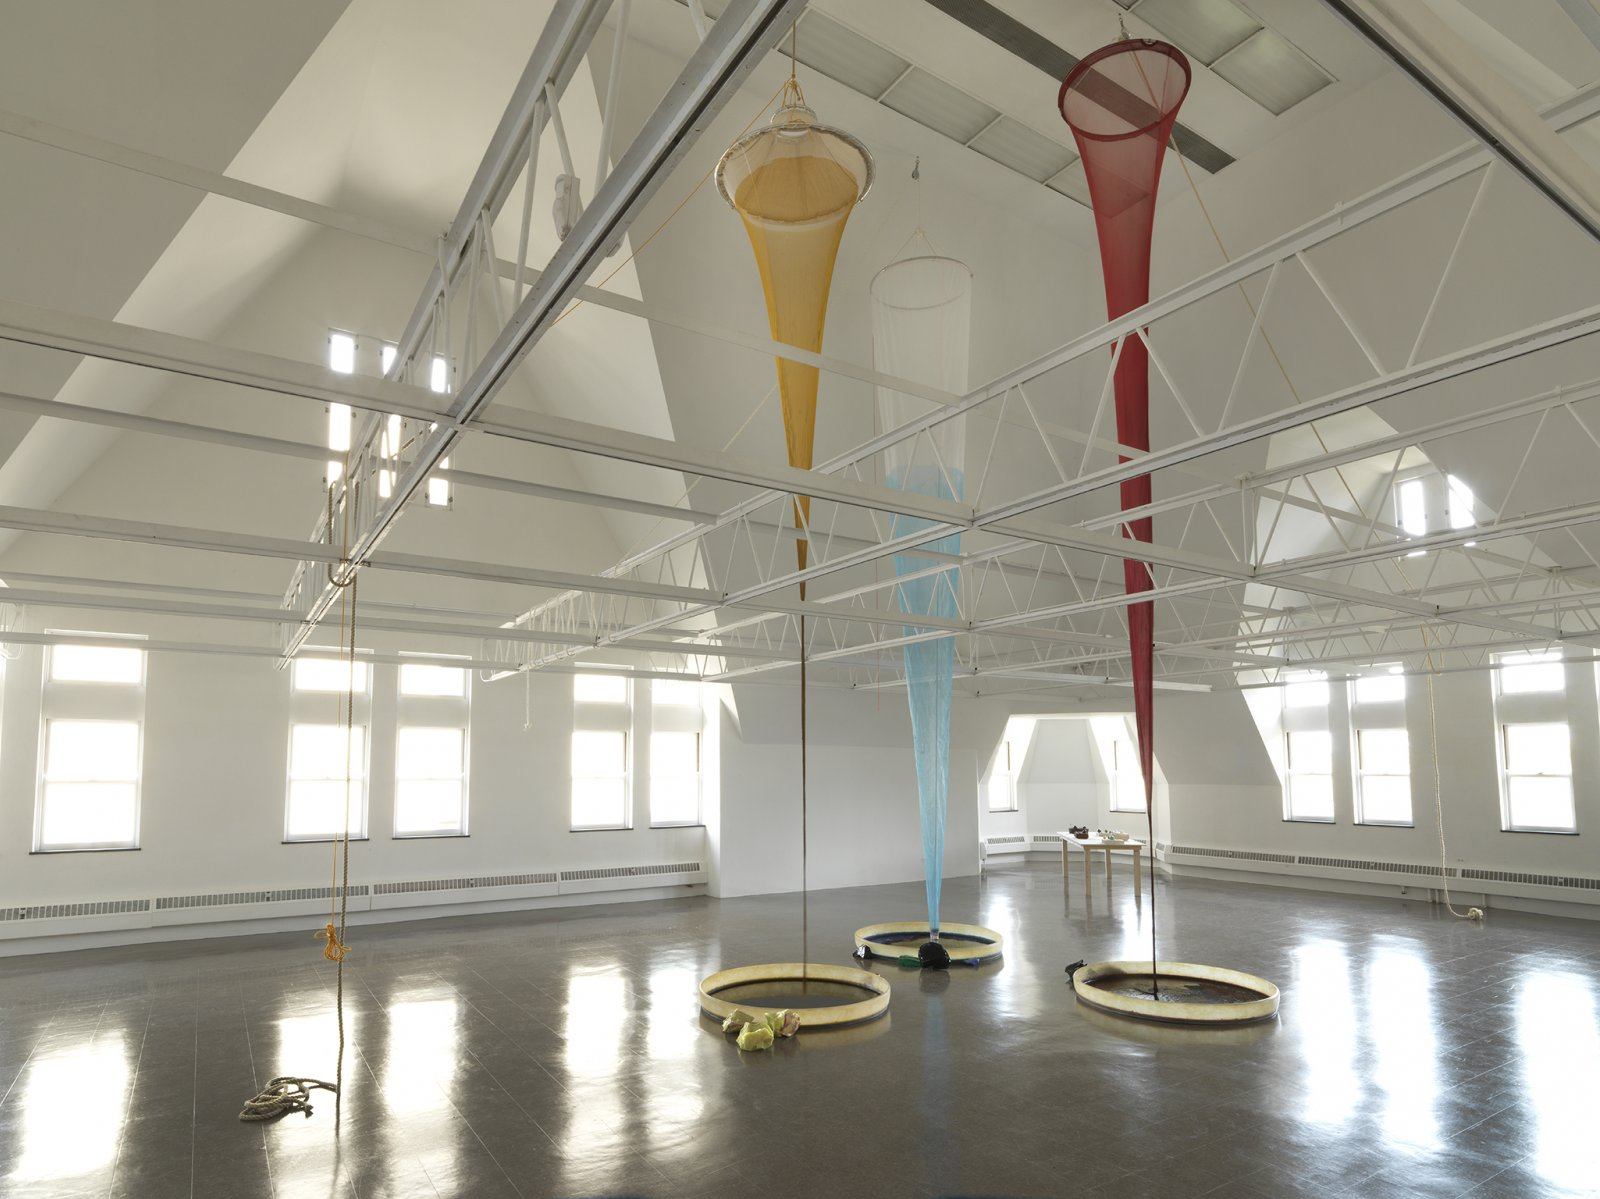 Christina Mackie, Colour Drop, 2014, mixed media, dimensions variable. Installation view, Colourdrop,TheRenaissanceSociety,Chicago, 2014 by Christina Mackie